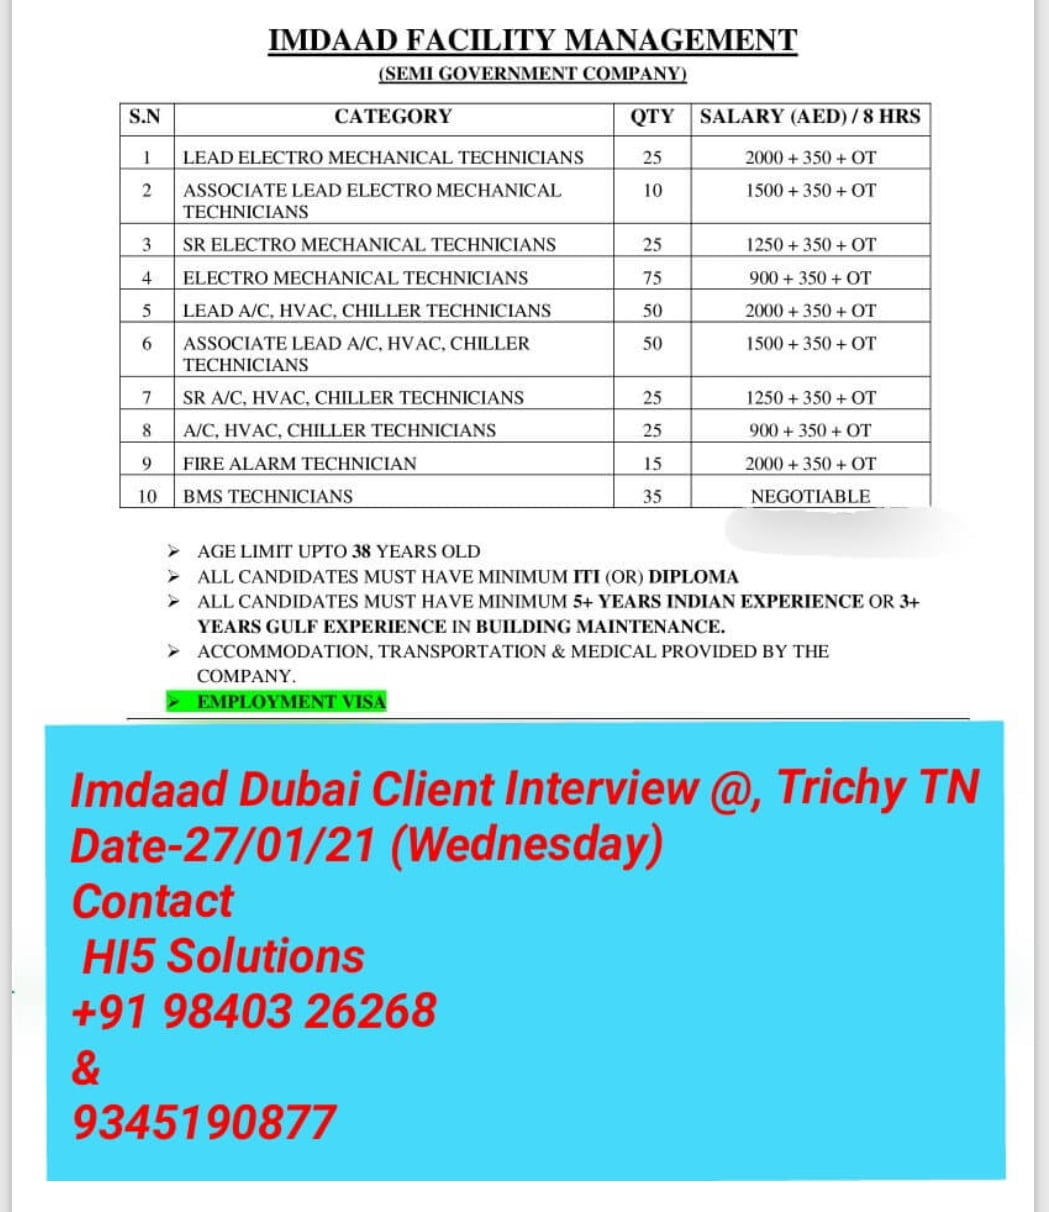 URGENTLY REQUIRED FOR IMDAAD FACILITY MANAGEMENT-DUBAI